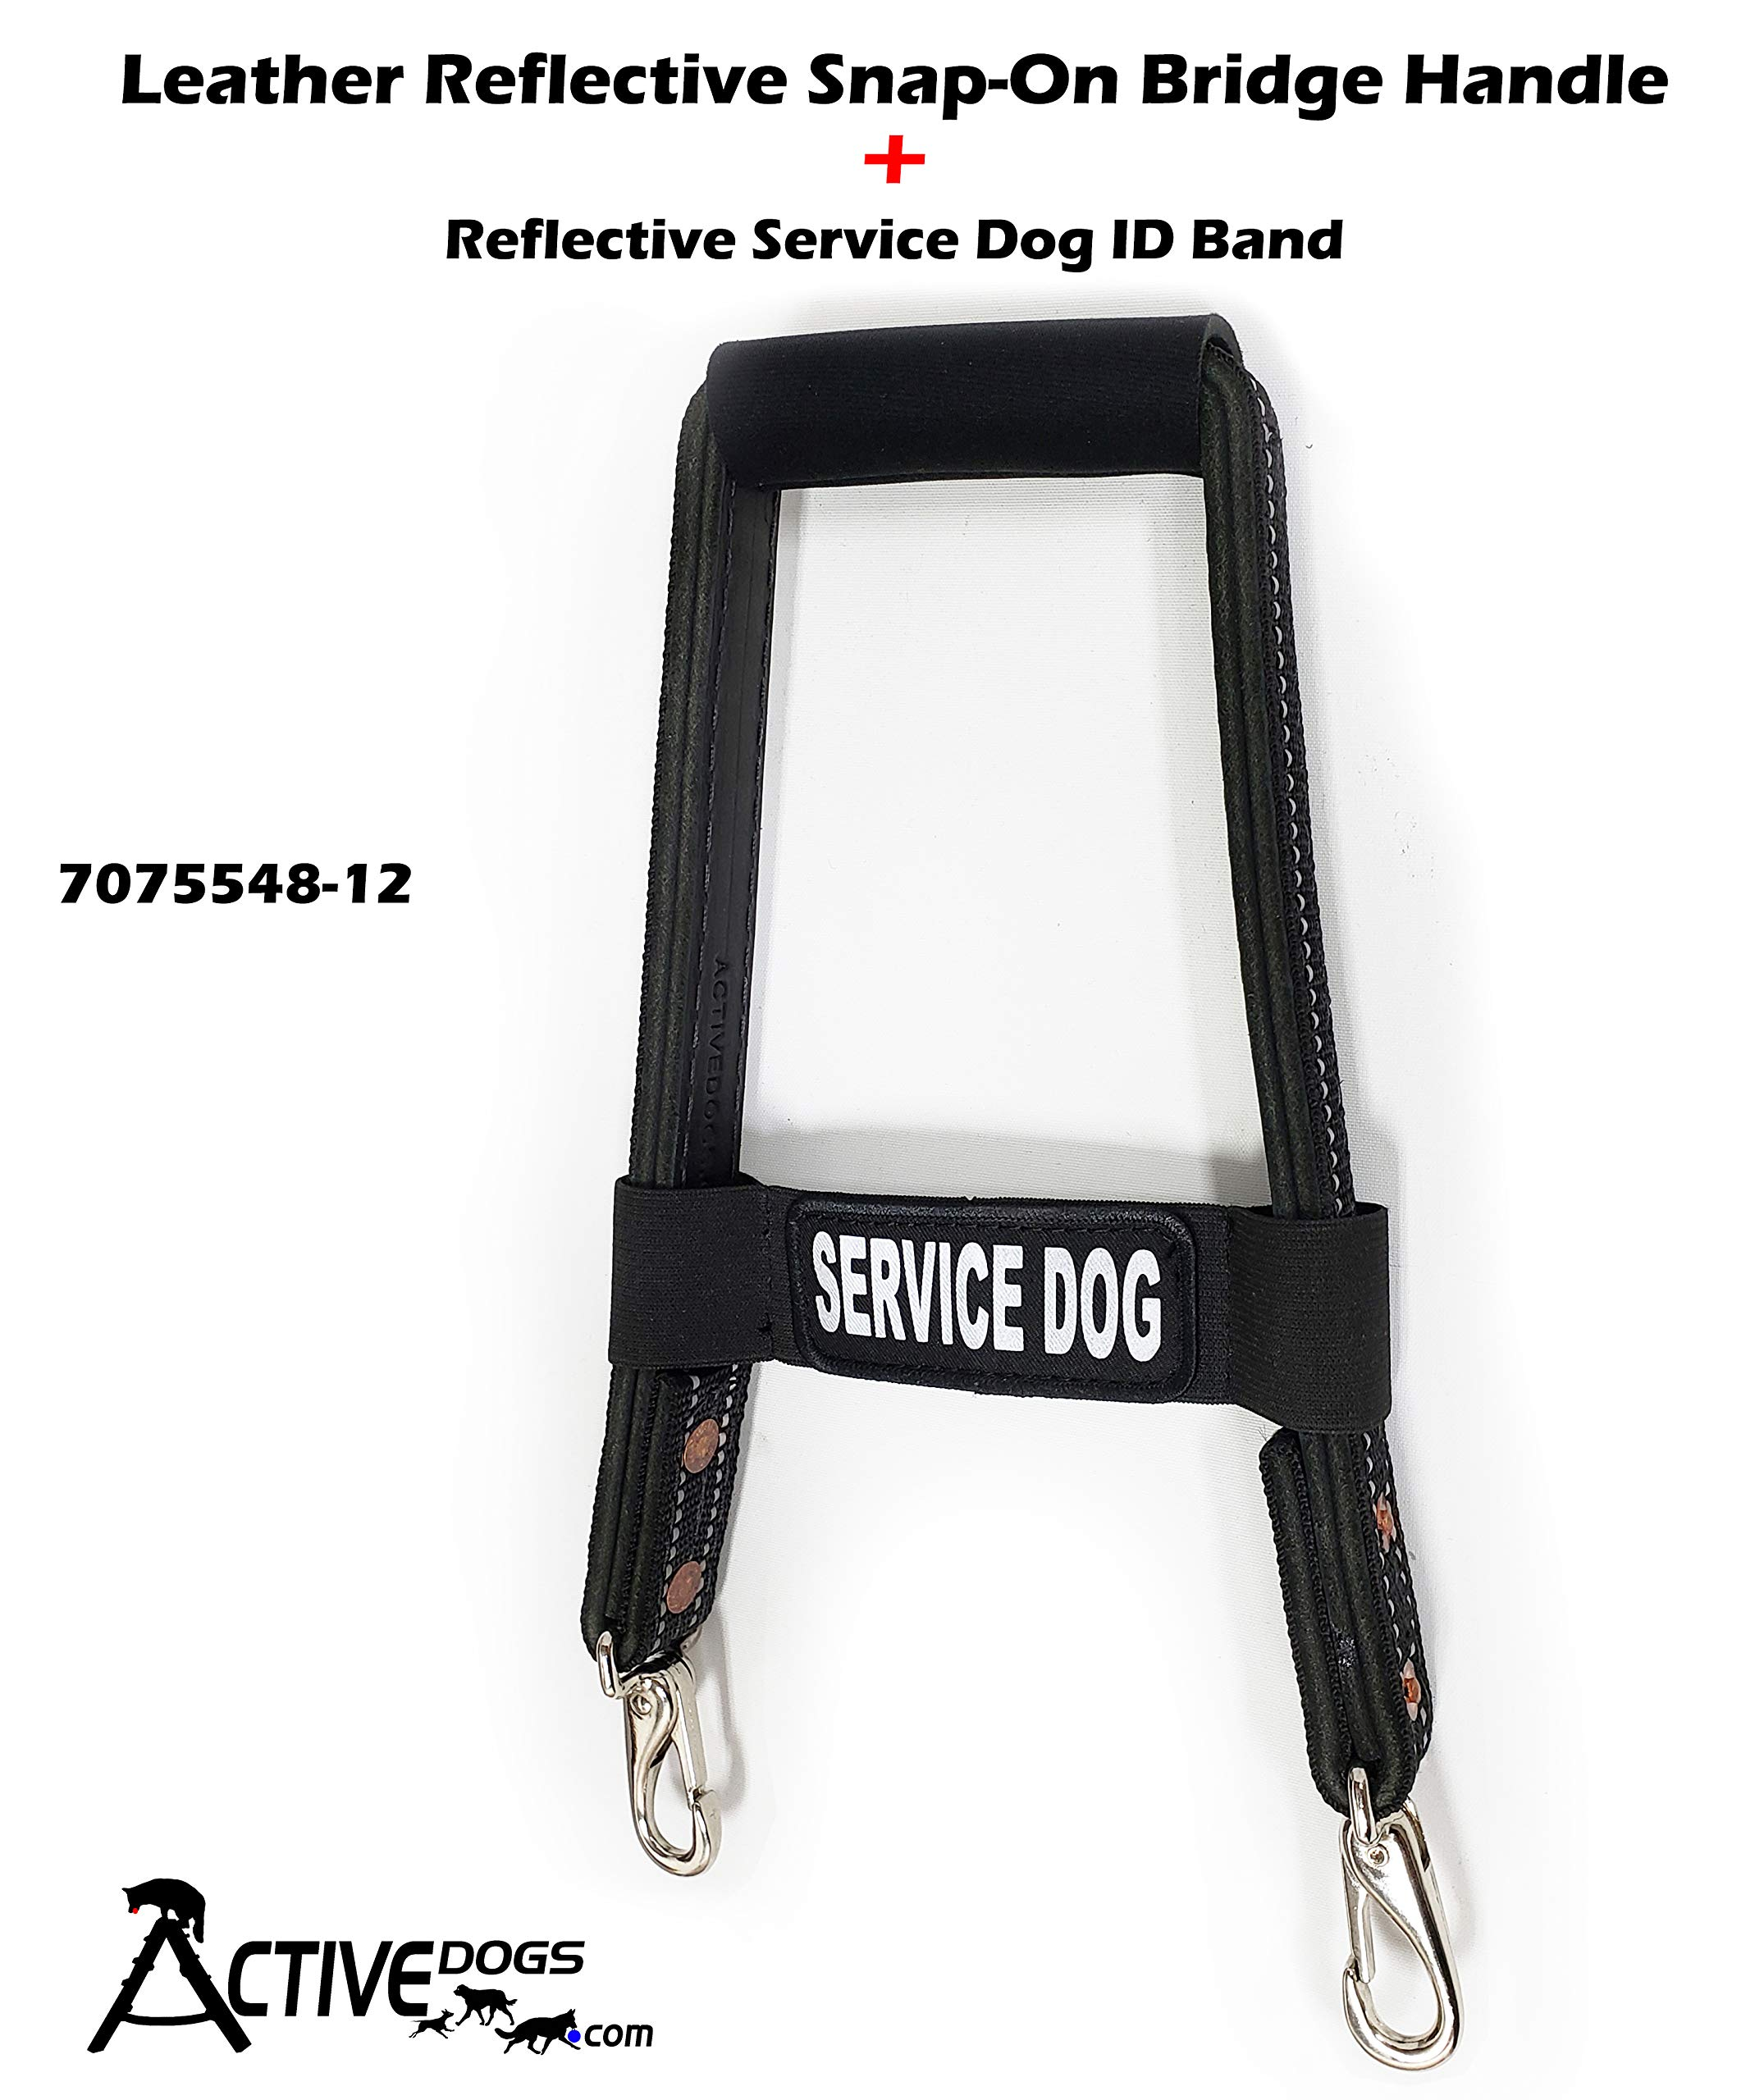 Activedogs Leather Reflective Snap-On Service Dog Bridge Handle + Reflective Service Dog ID Band (12'')